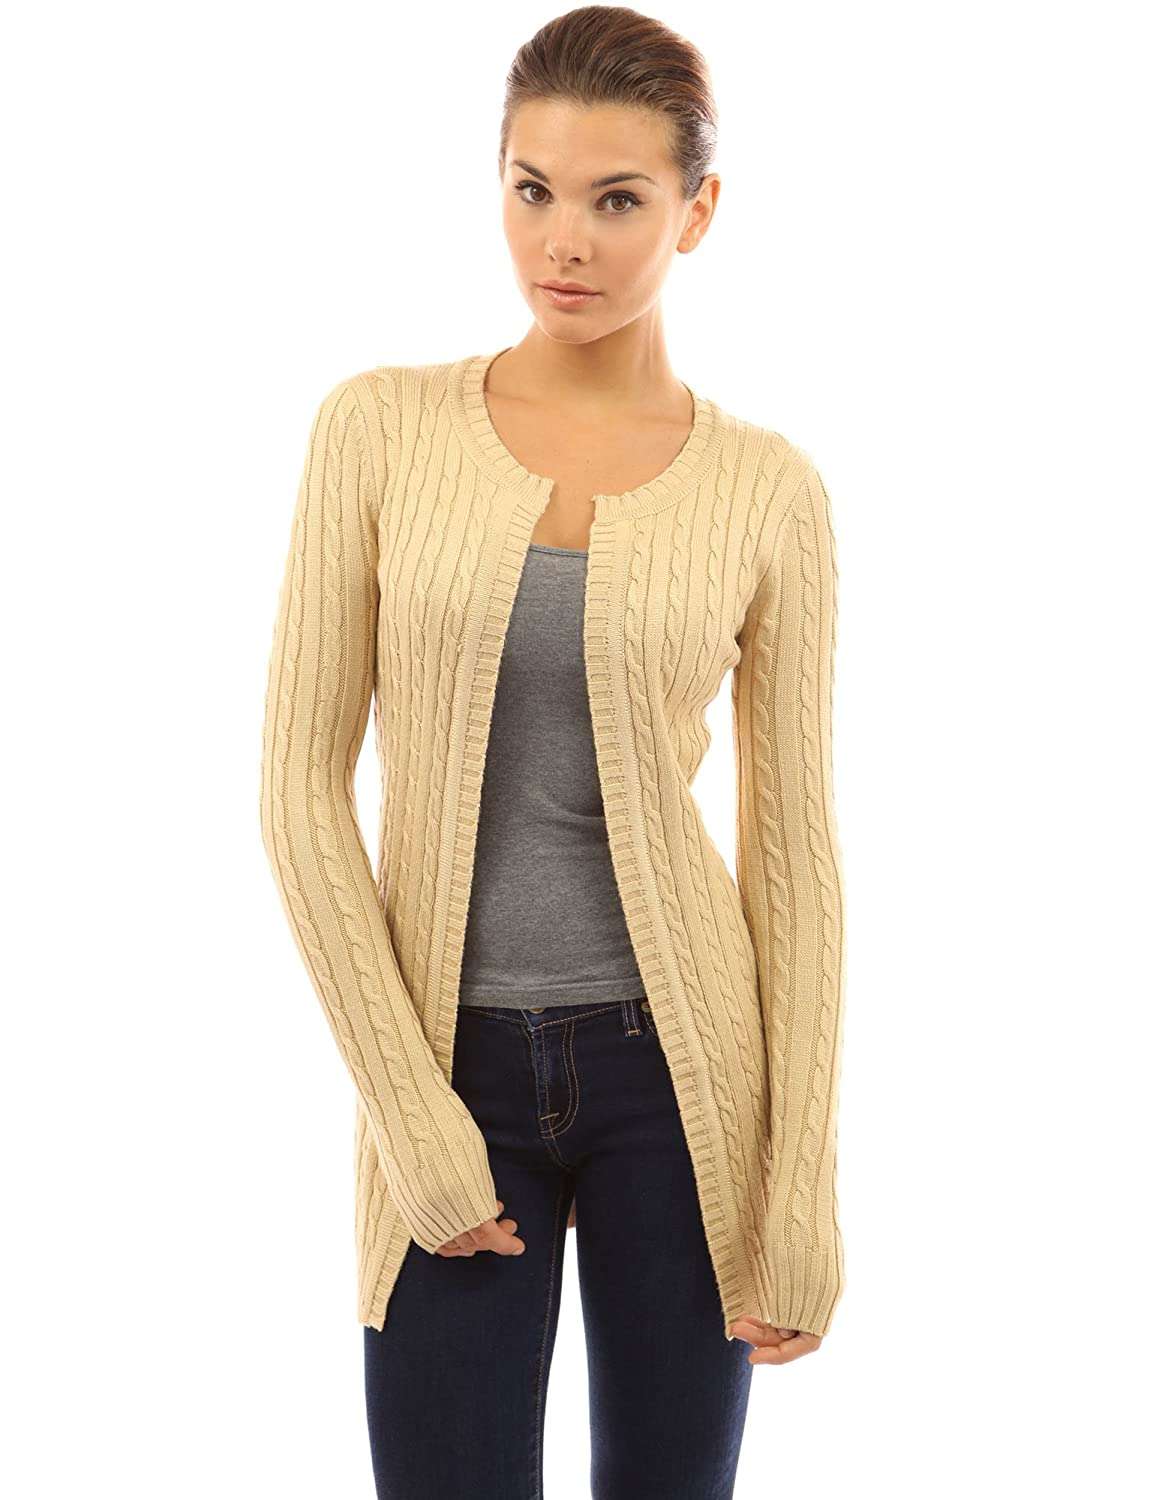 PattyBoutik Women's Cable Knit Open Front Cardigan